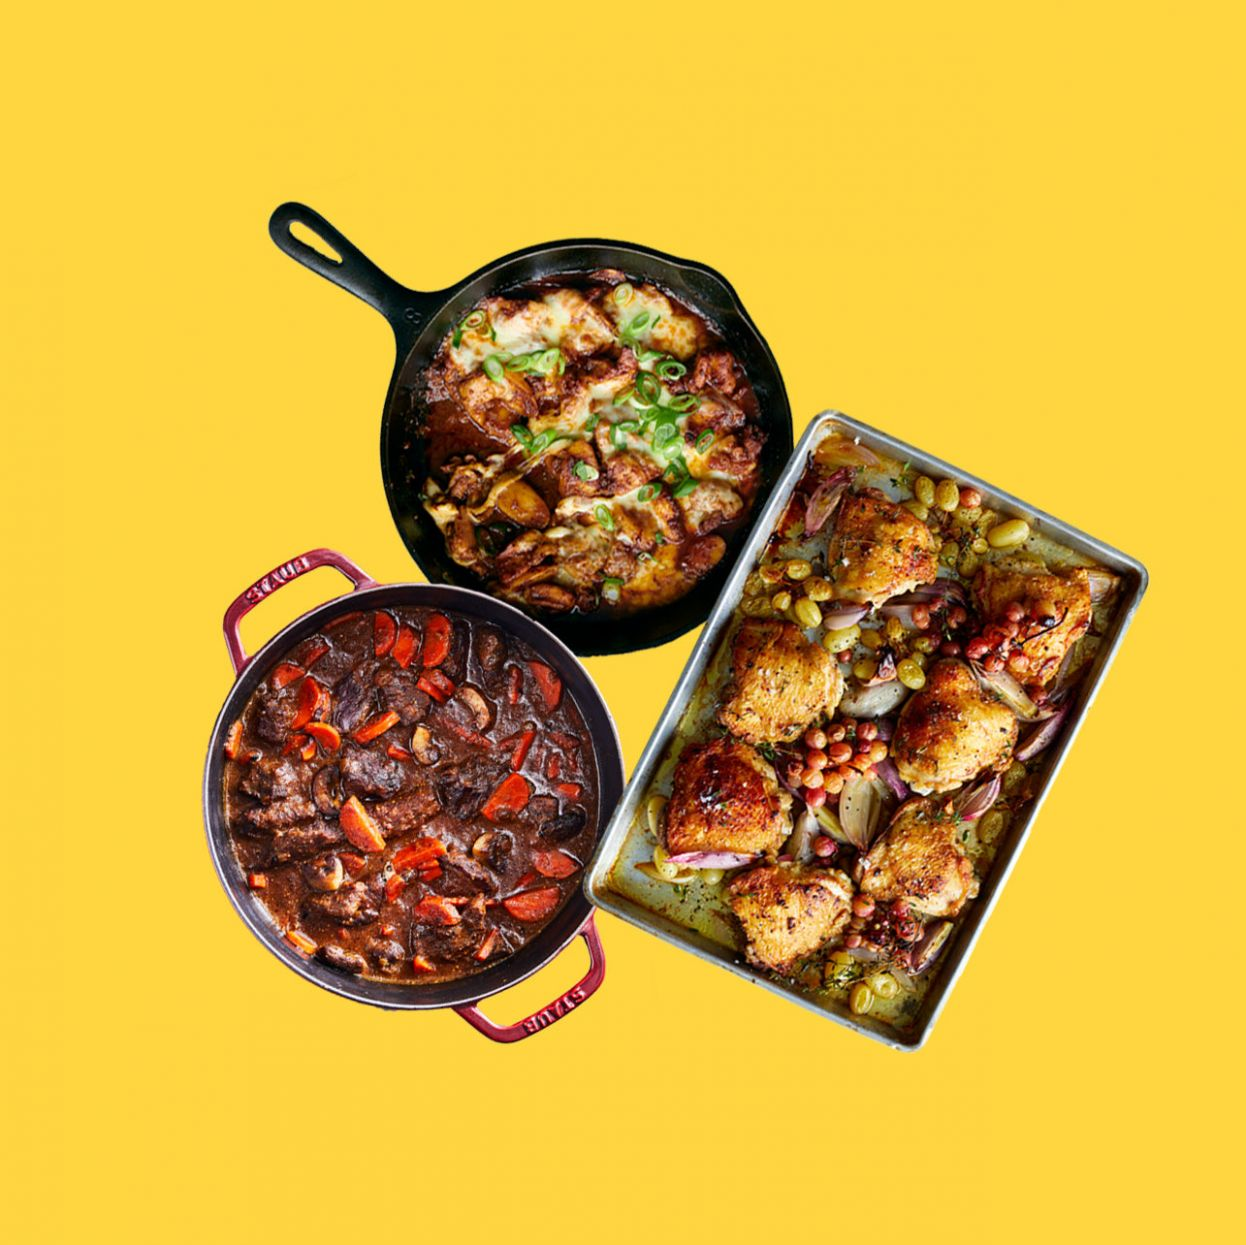 One Pot, One Meal: Curating a Special Set of Simple Recipes - The ..